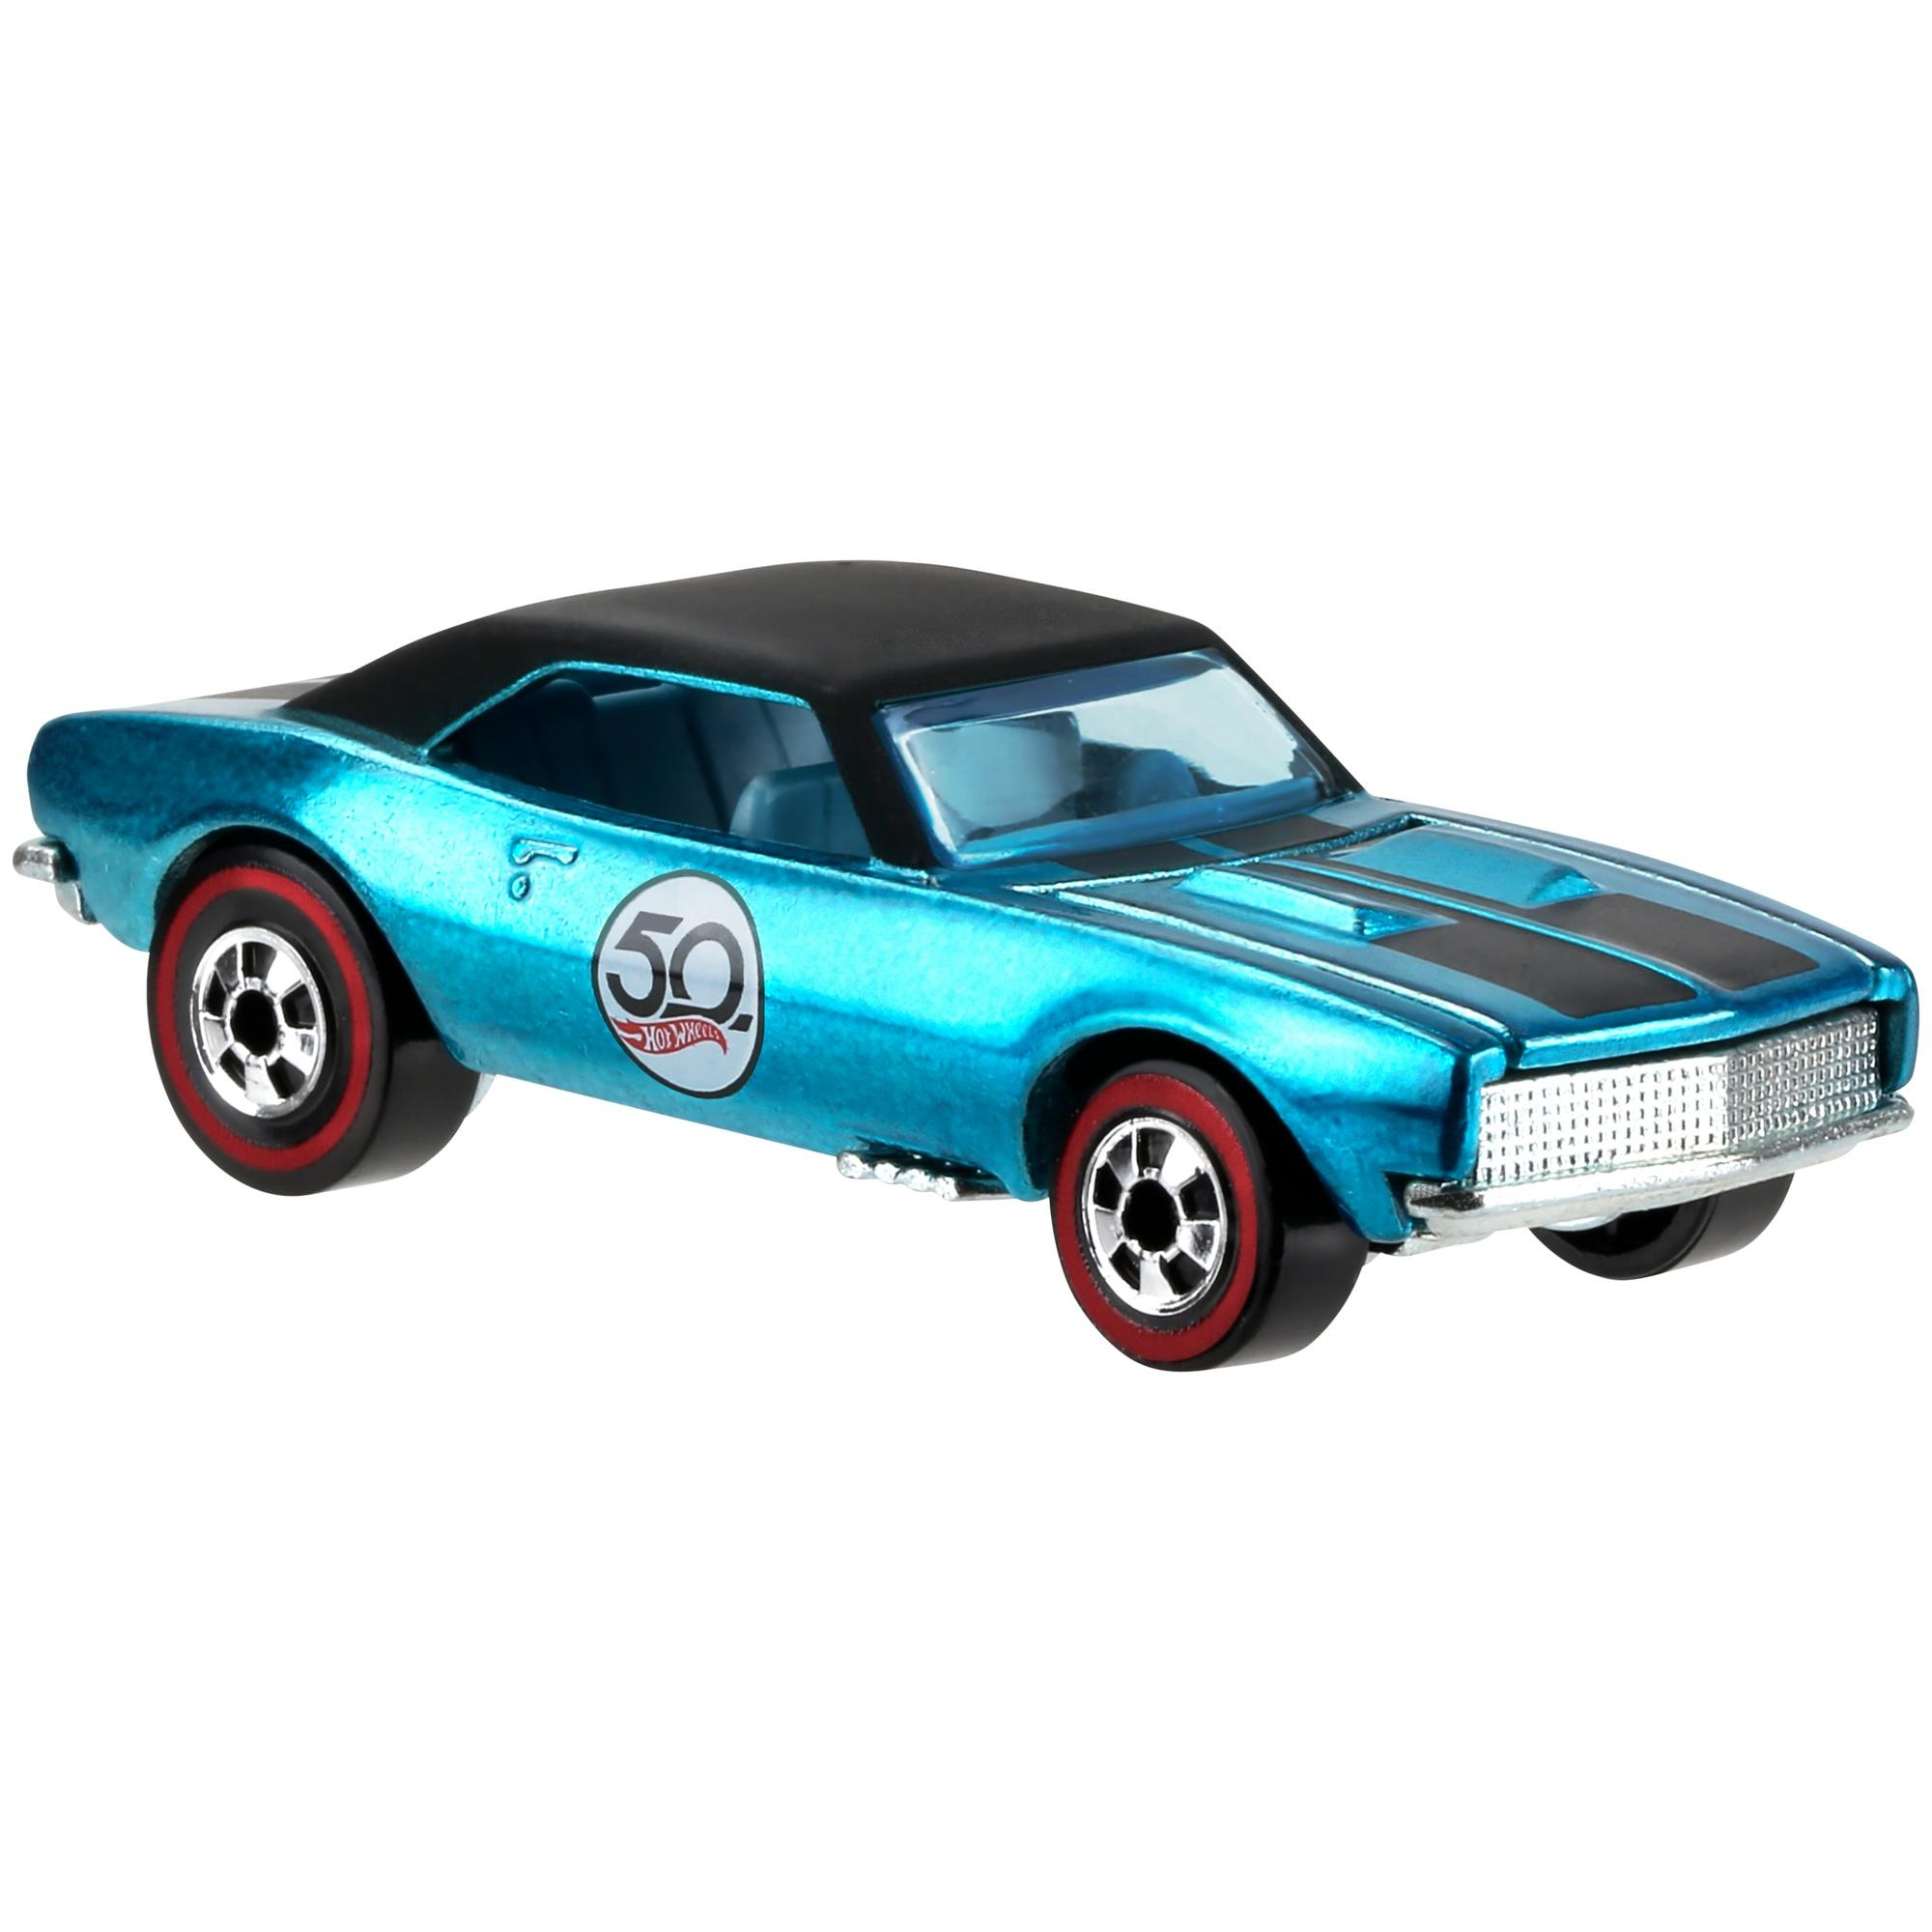 Hot Wheels 50th Anniversary Die-Cast Vehicle (Styles May Vary) by Mattel